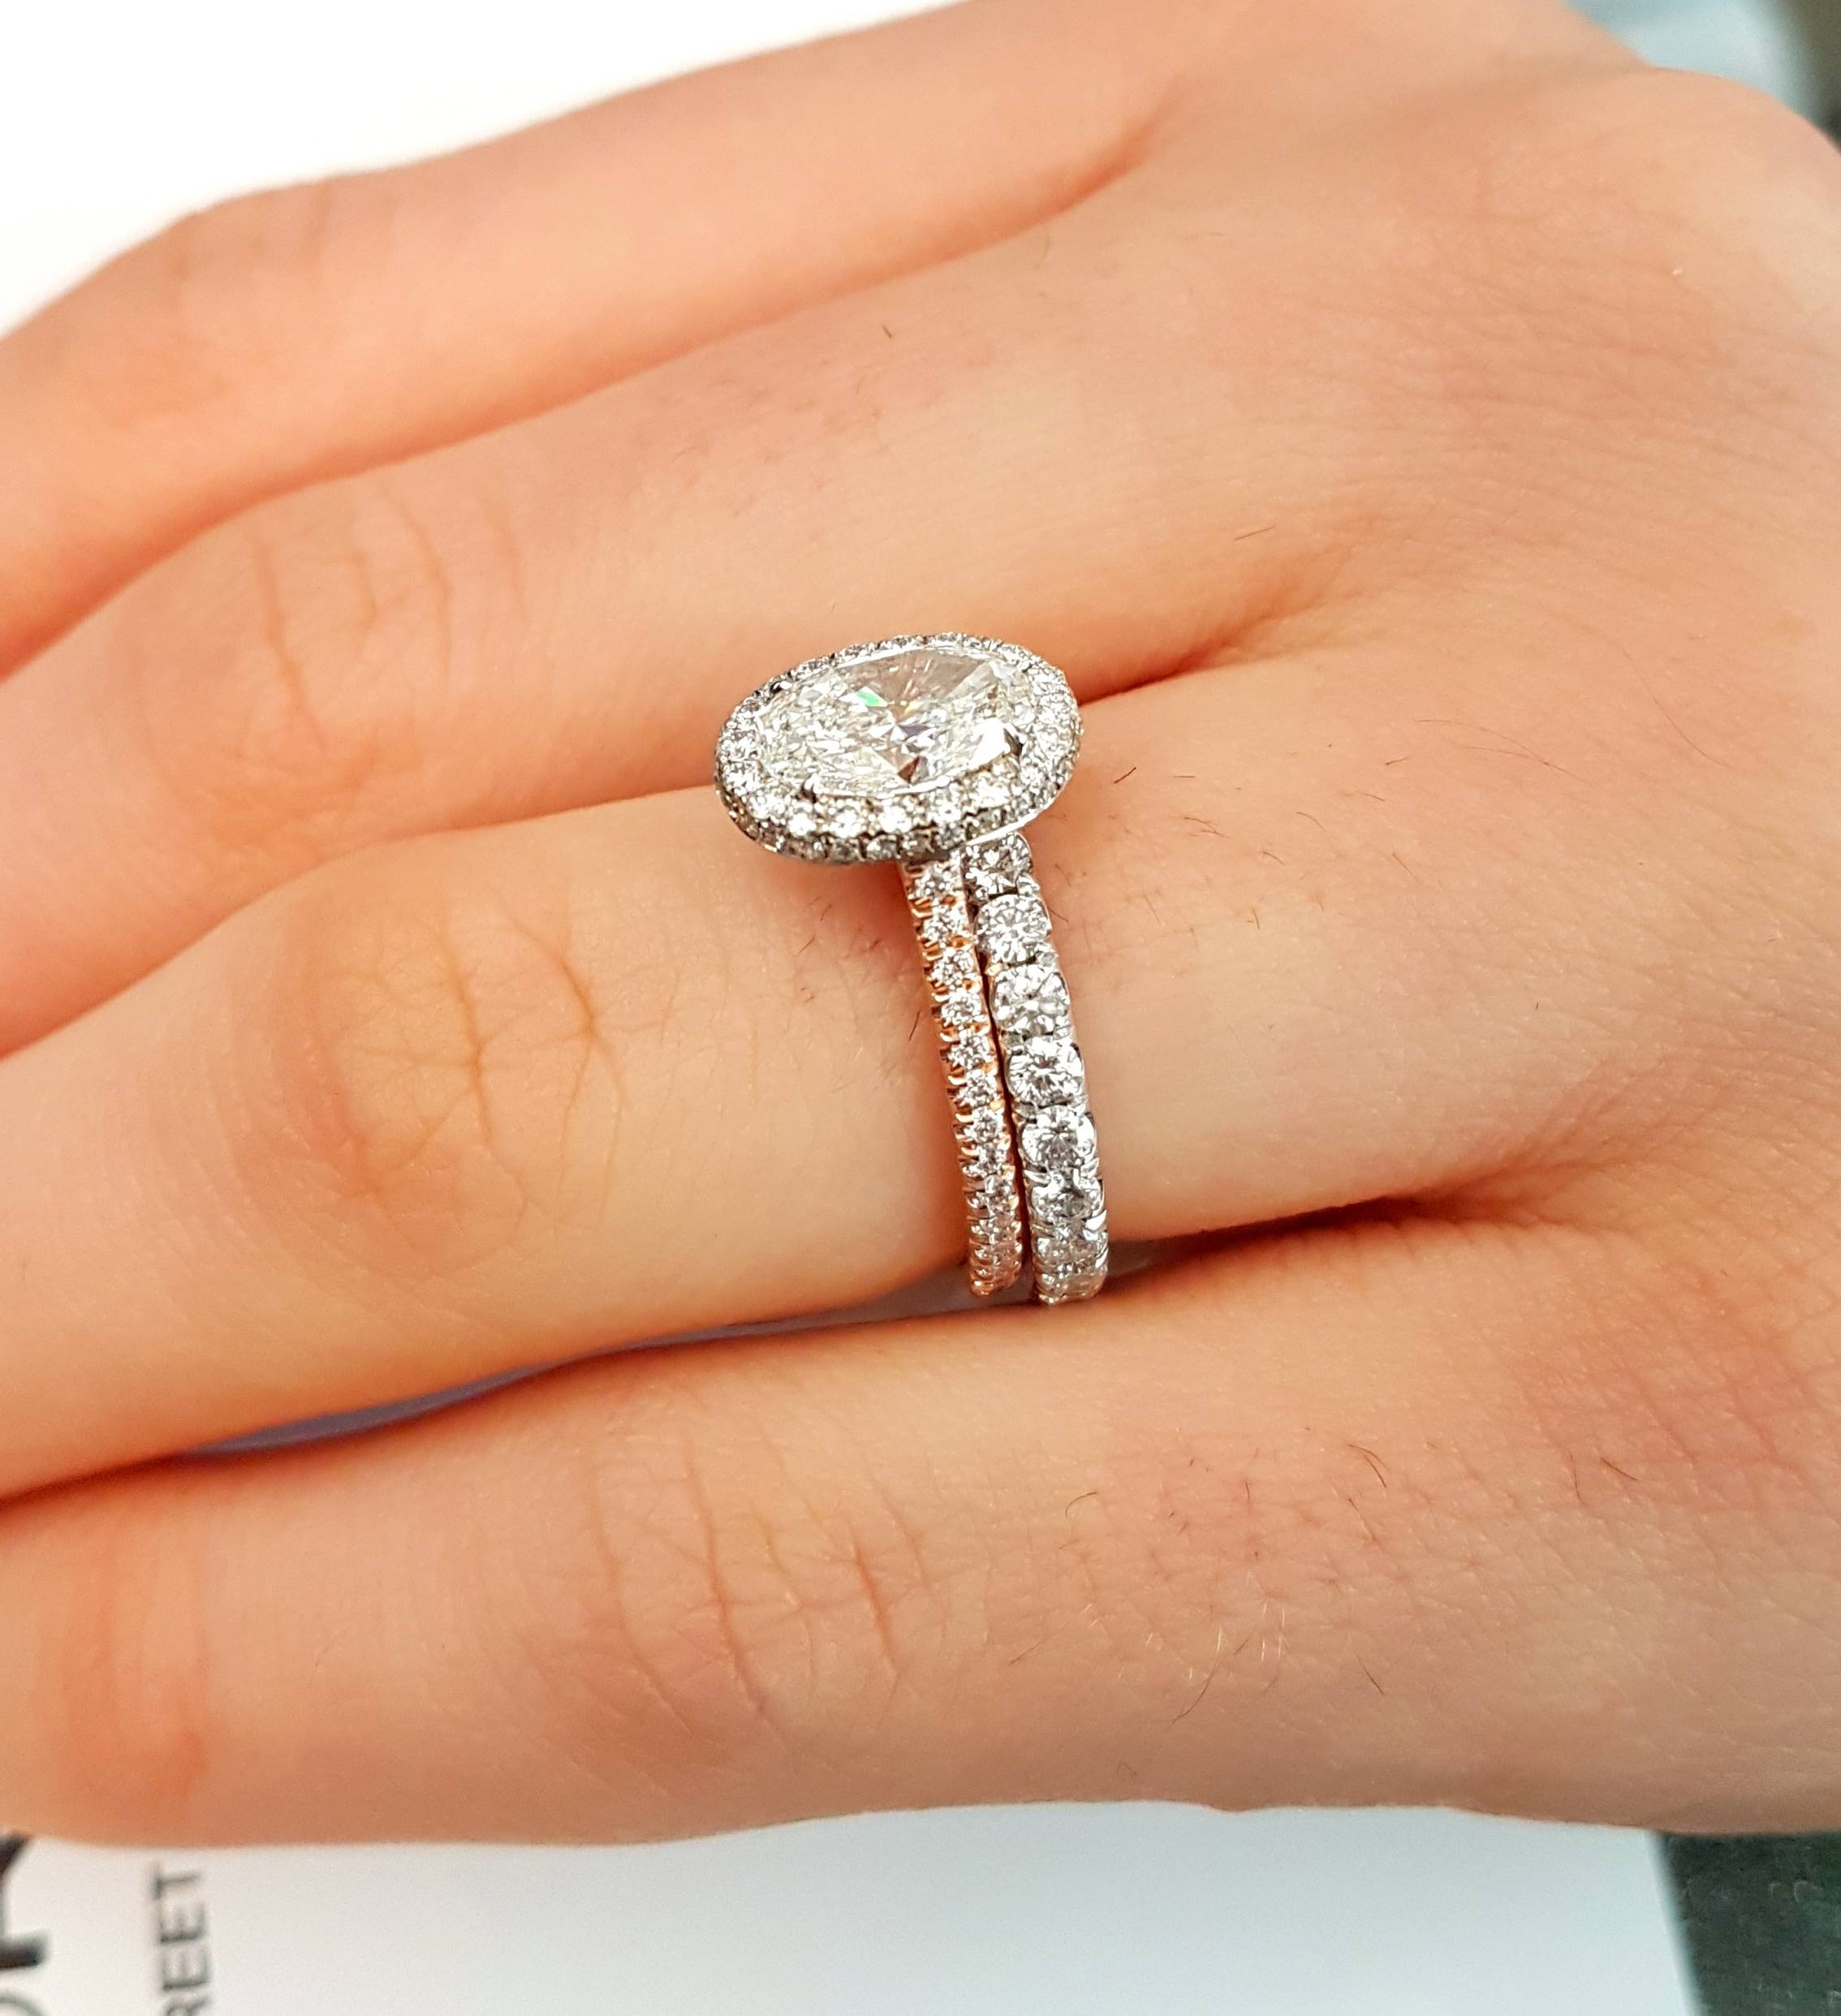 simon images wedding diamond jewellery g engagement on raymond lee best vintage diamondsbyrl pinterest rings